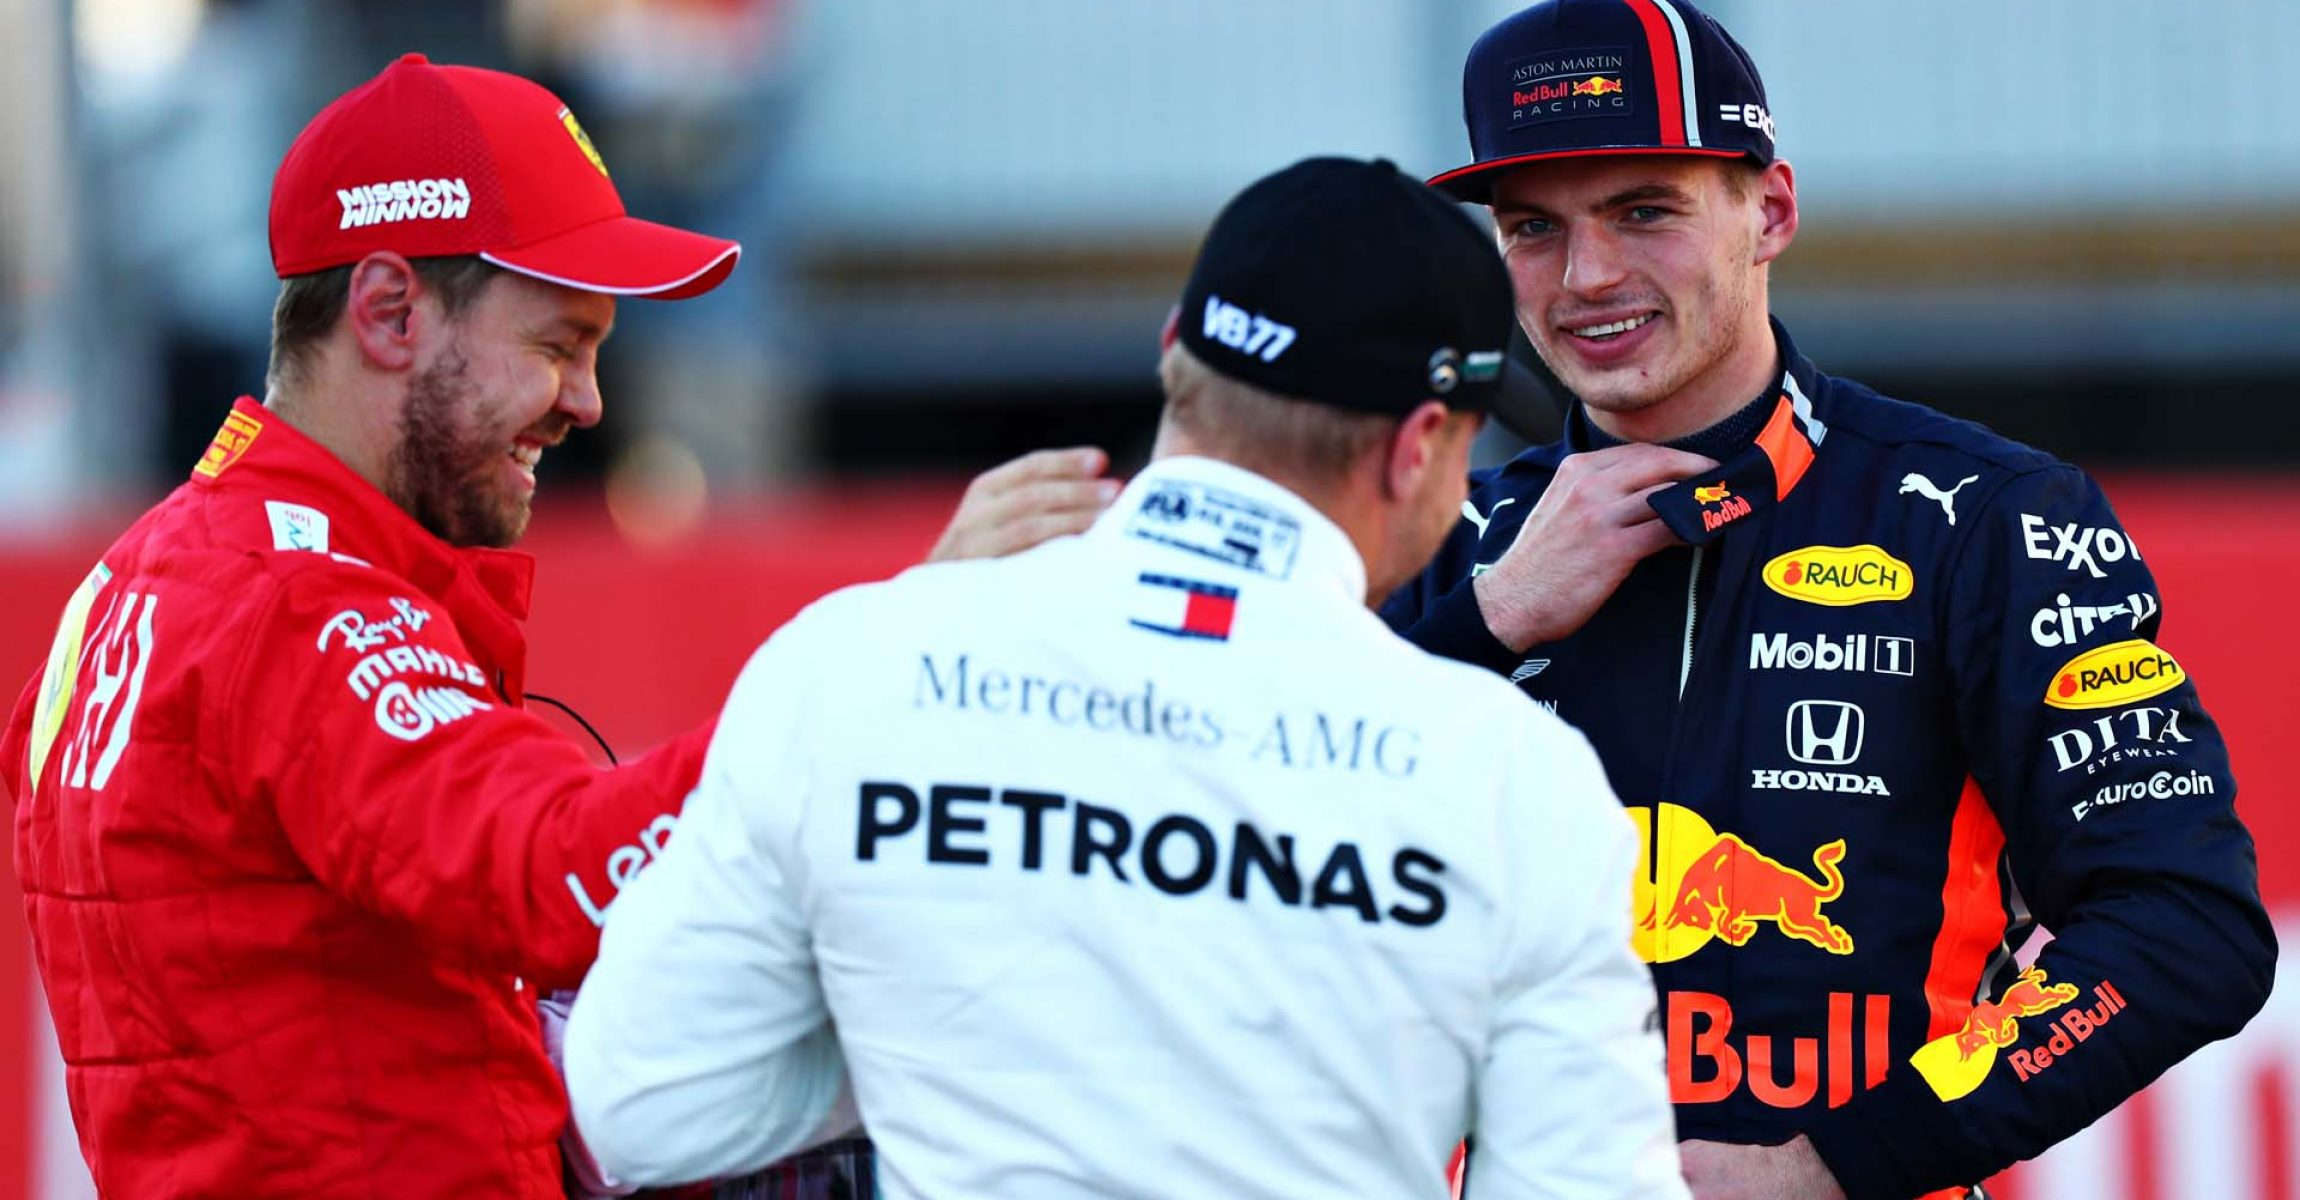 AUSTIN, TEXAS - NOVEMBER 02: Top three qualifiers Valtteri Bottas of Finland and Mercedes GP, Sebastian Vettel of Germany and Ferrari and Max Verstappen of Netherlands and Red Bull Racing celebrate in parc ferme during qualifying for the F1 Grand Prix of USA at Circuit of The Americas on November 02, 2019 in Austin, Texas. (Photo by Dan Istitene/Getty Images) // Getty Images / Red Bull Content Pool // AP-222MSXHK92111 // Usage for editorial use only //